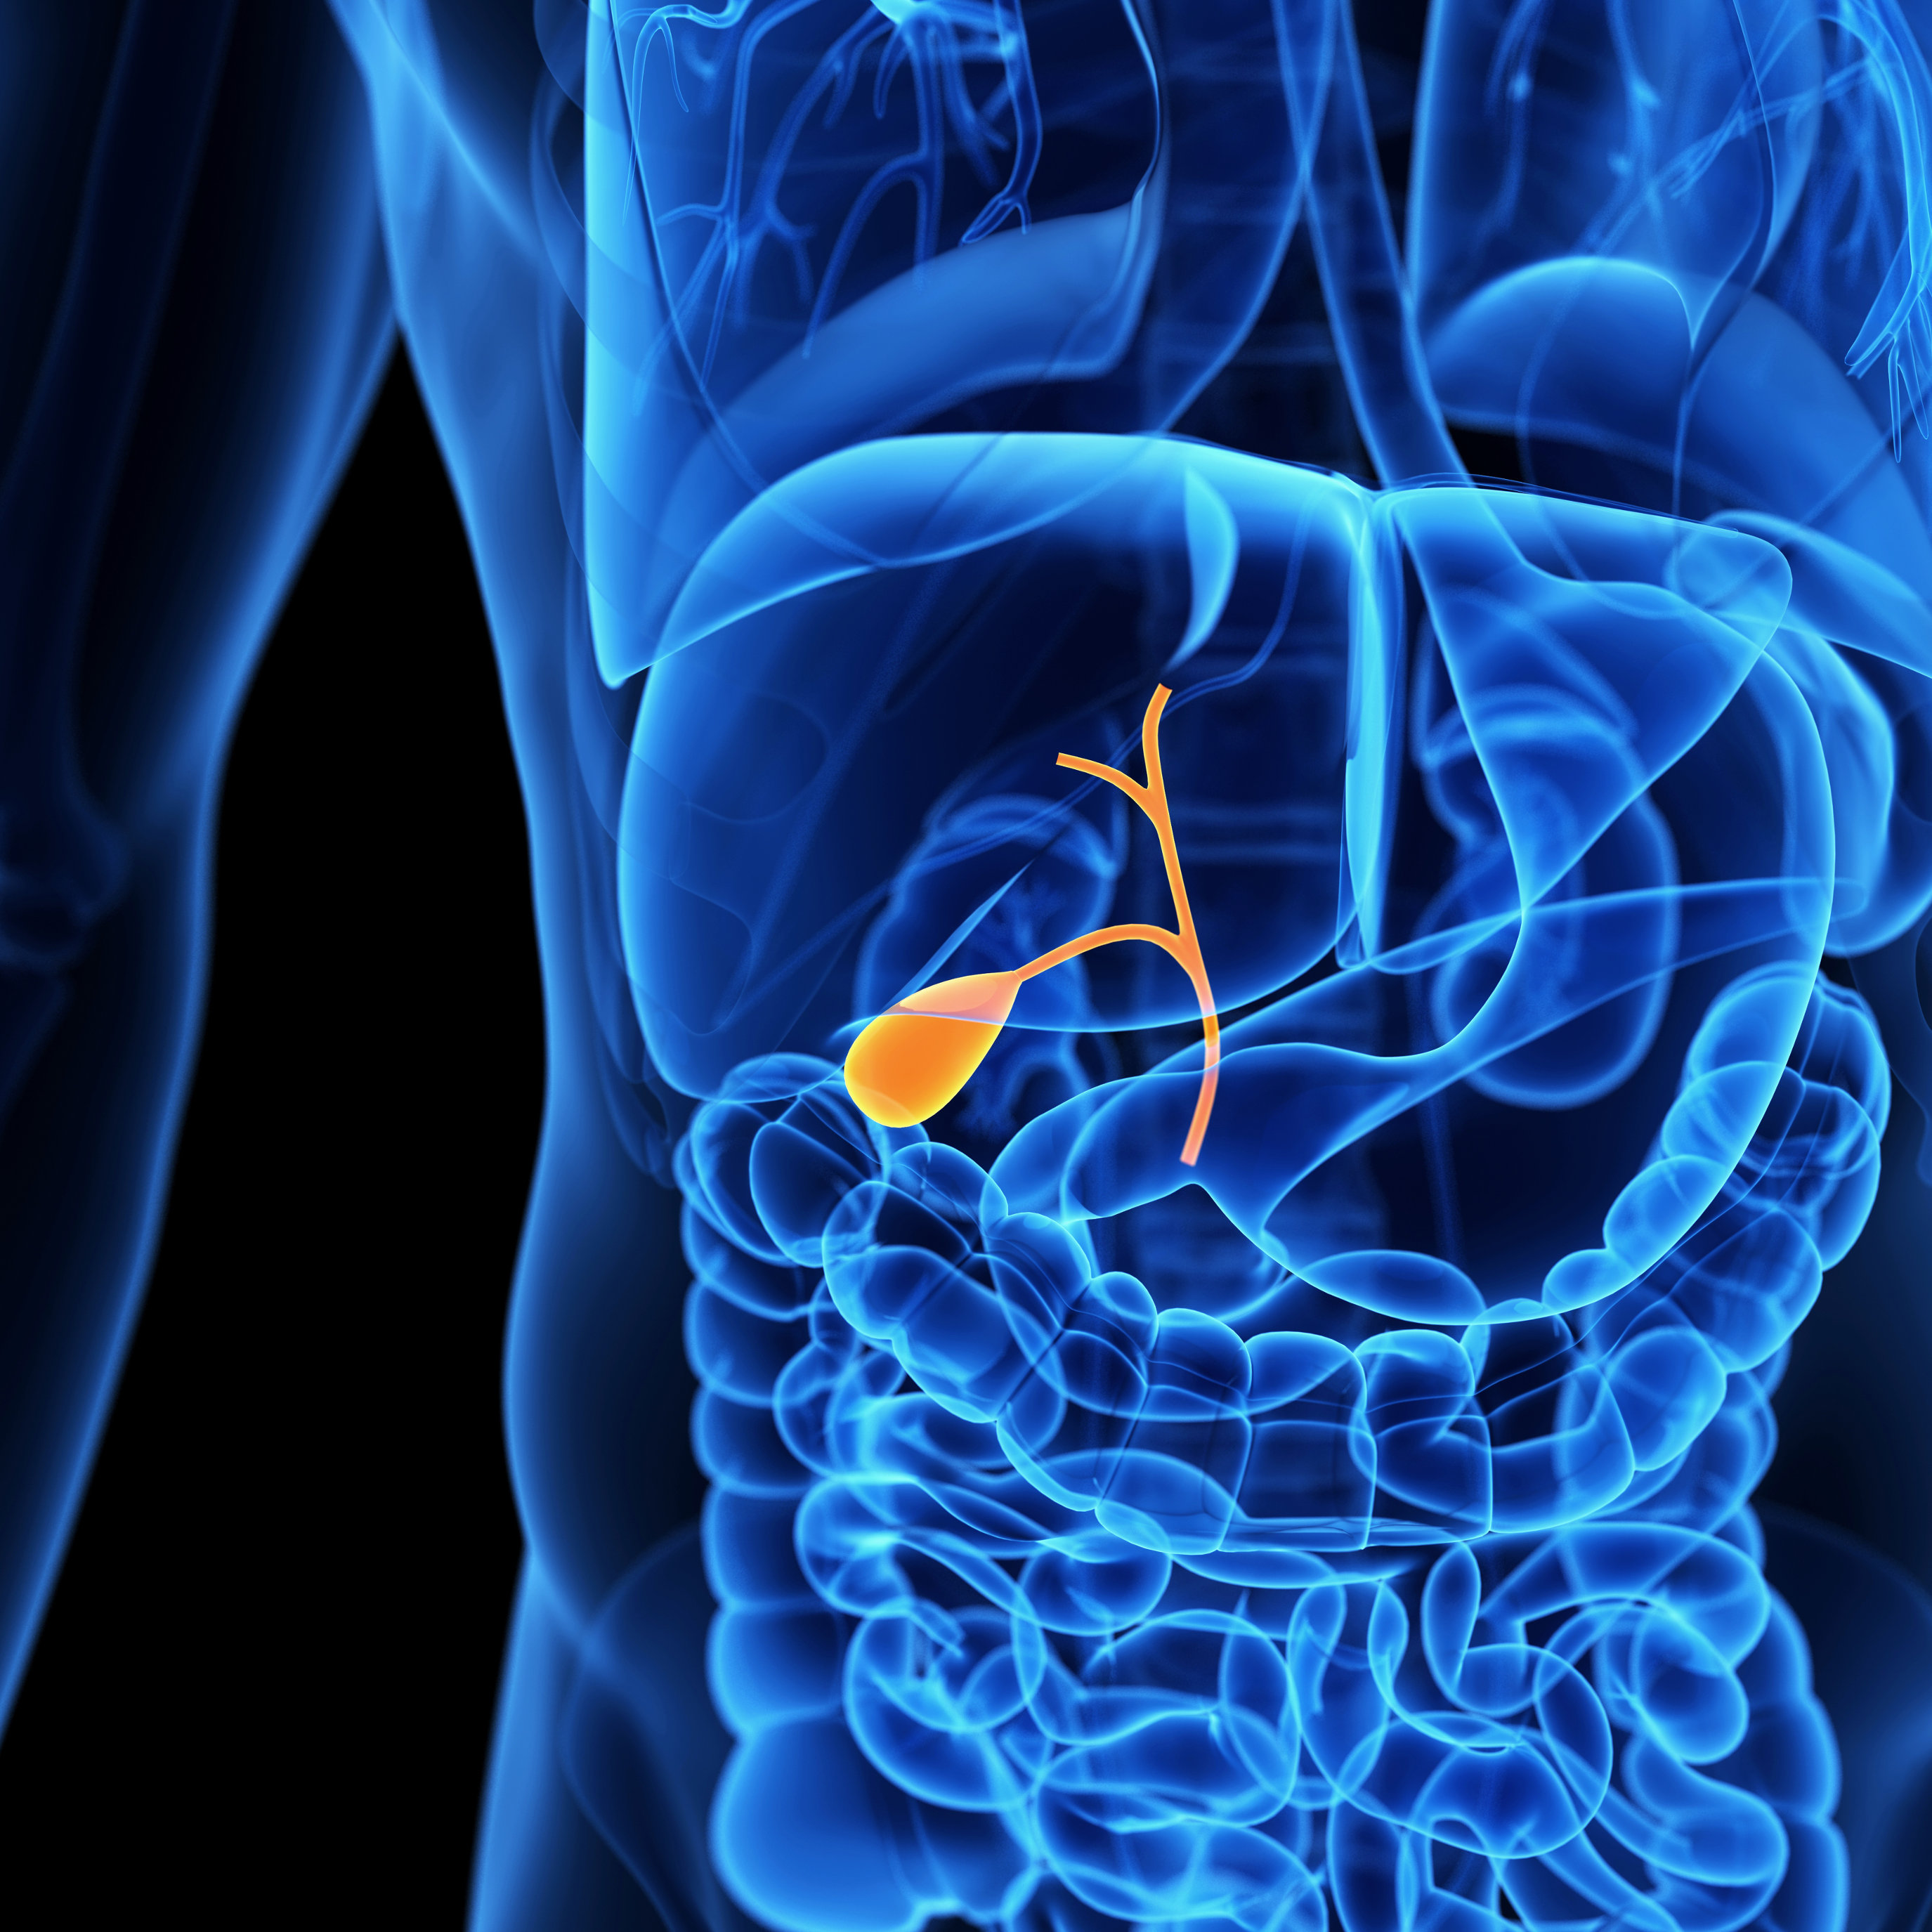 Complications of Gallstones (Gallbladder stones)